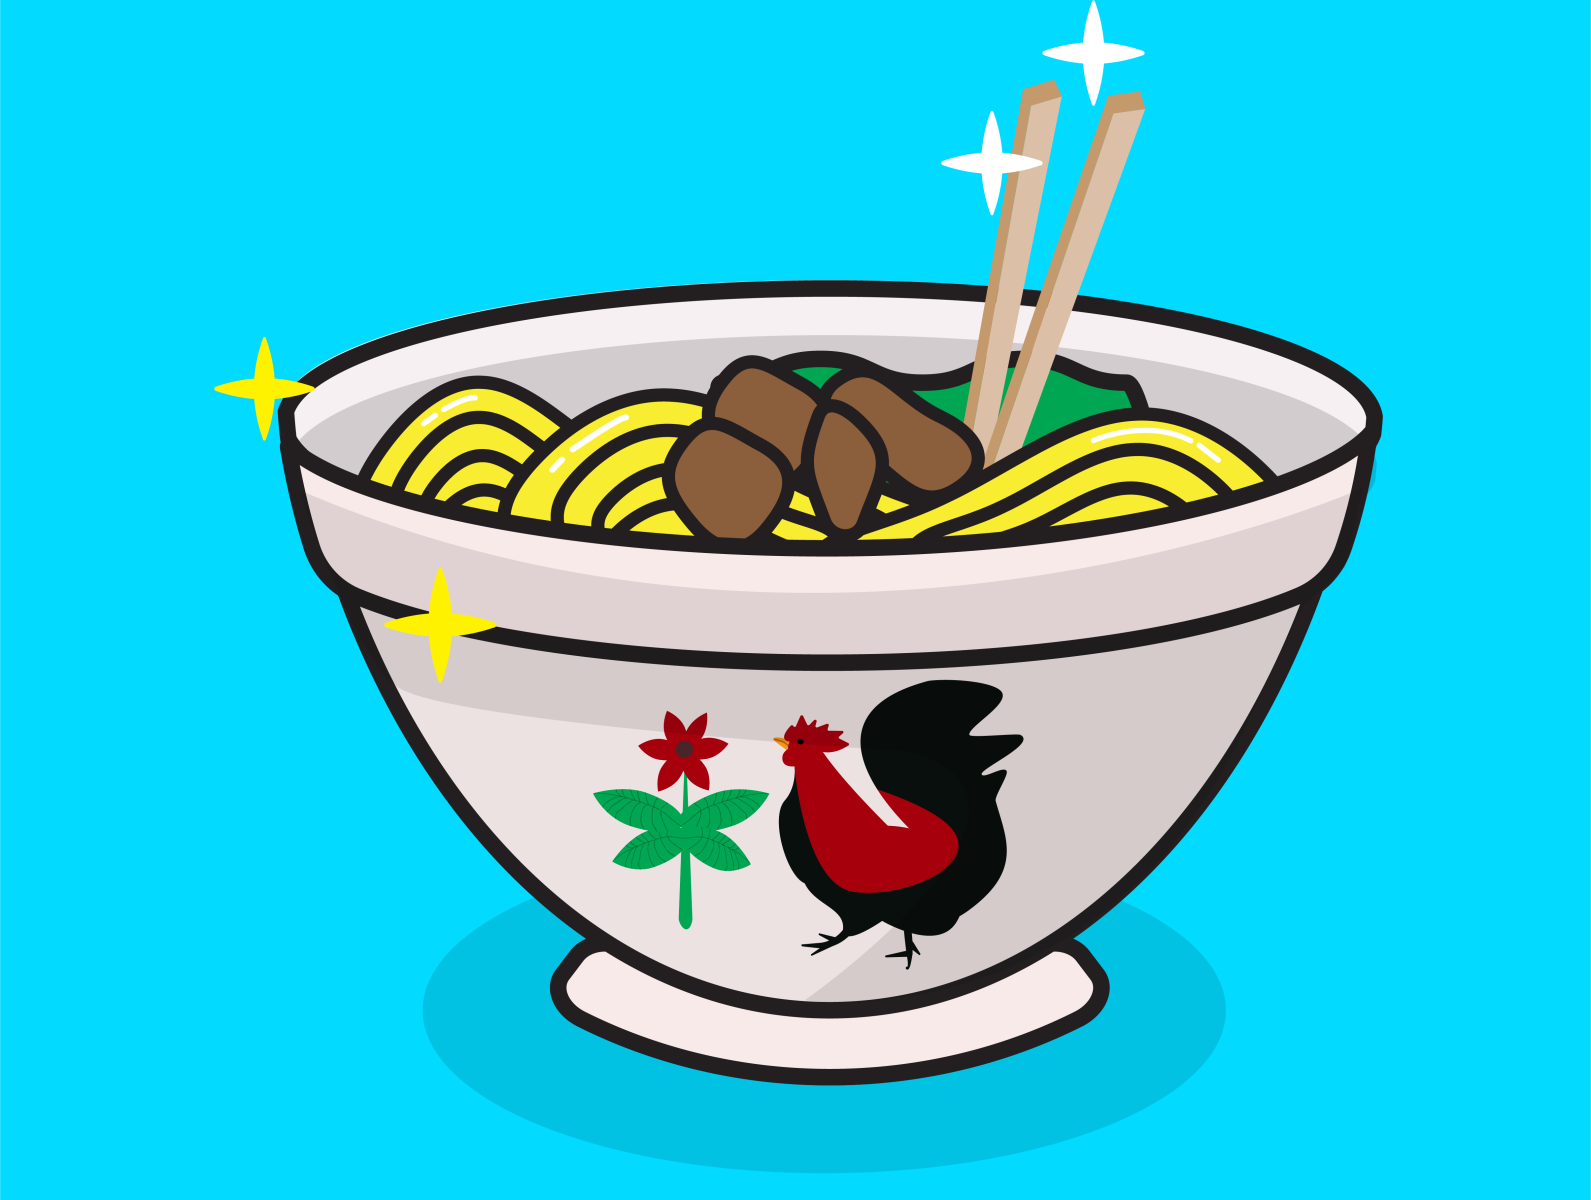 gambar mie ayam by cutecartoon on dribbble gambar mie ayam by cutecartoon on dribbble